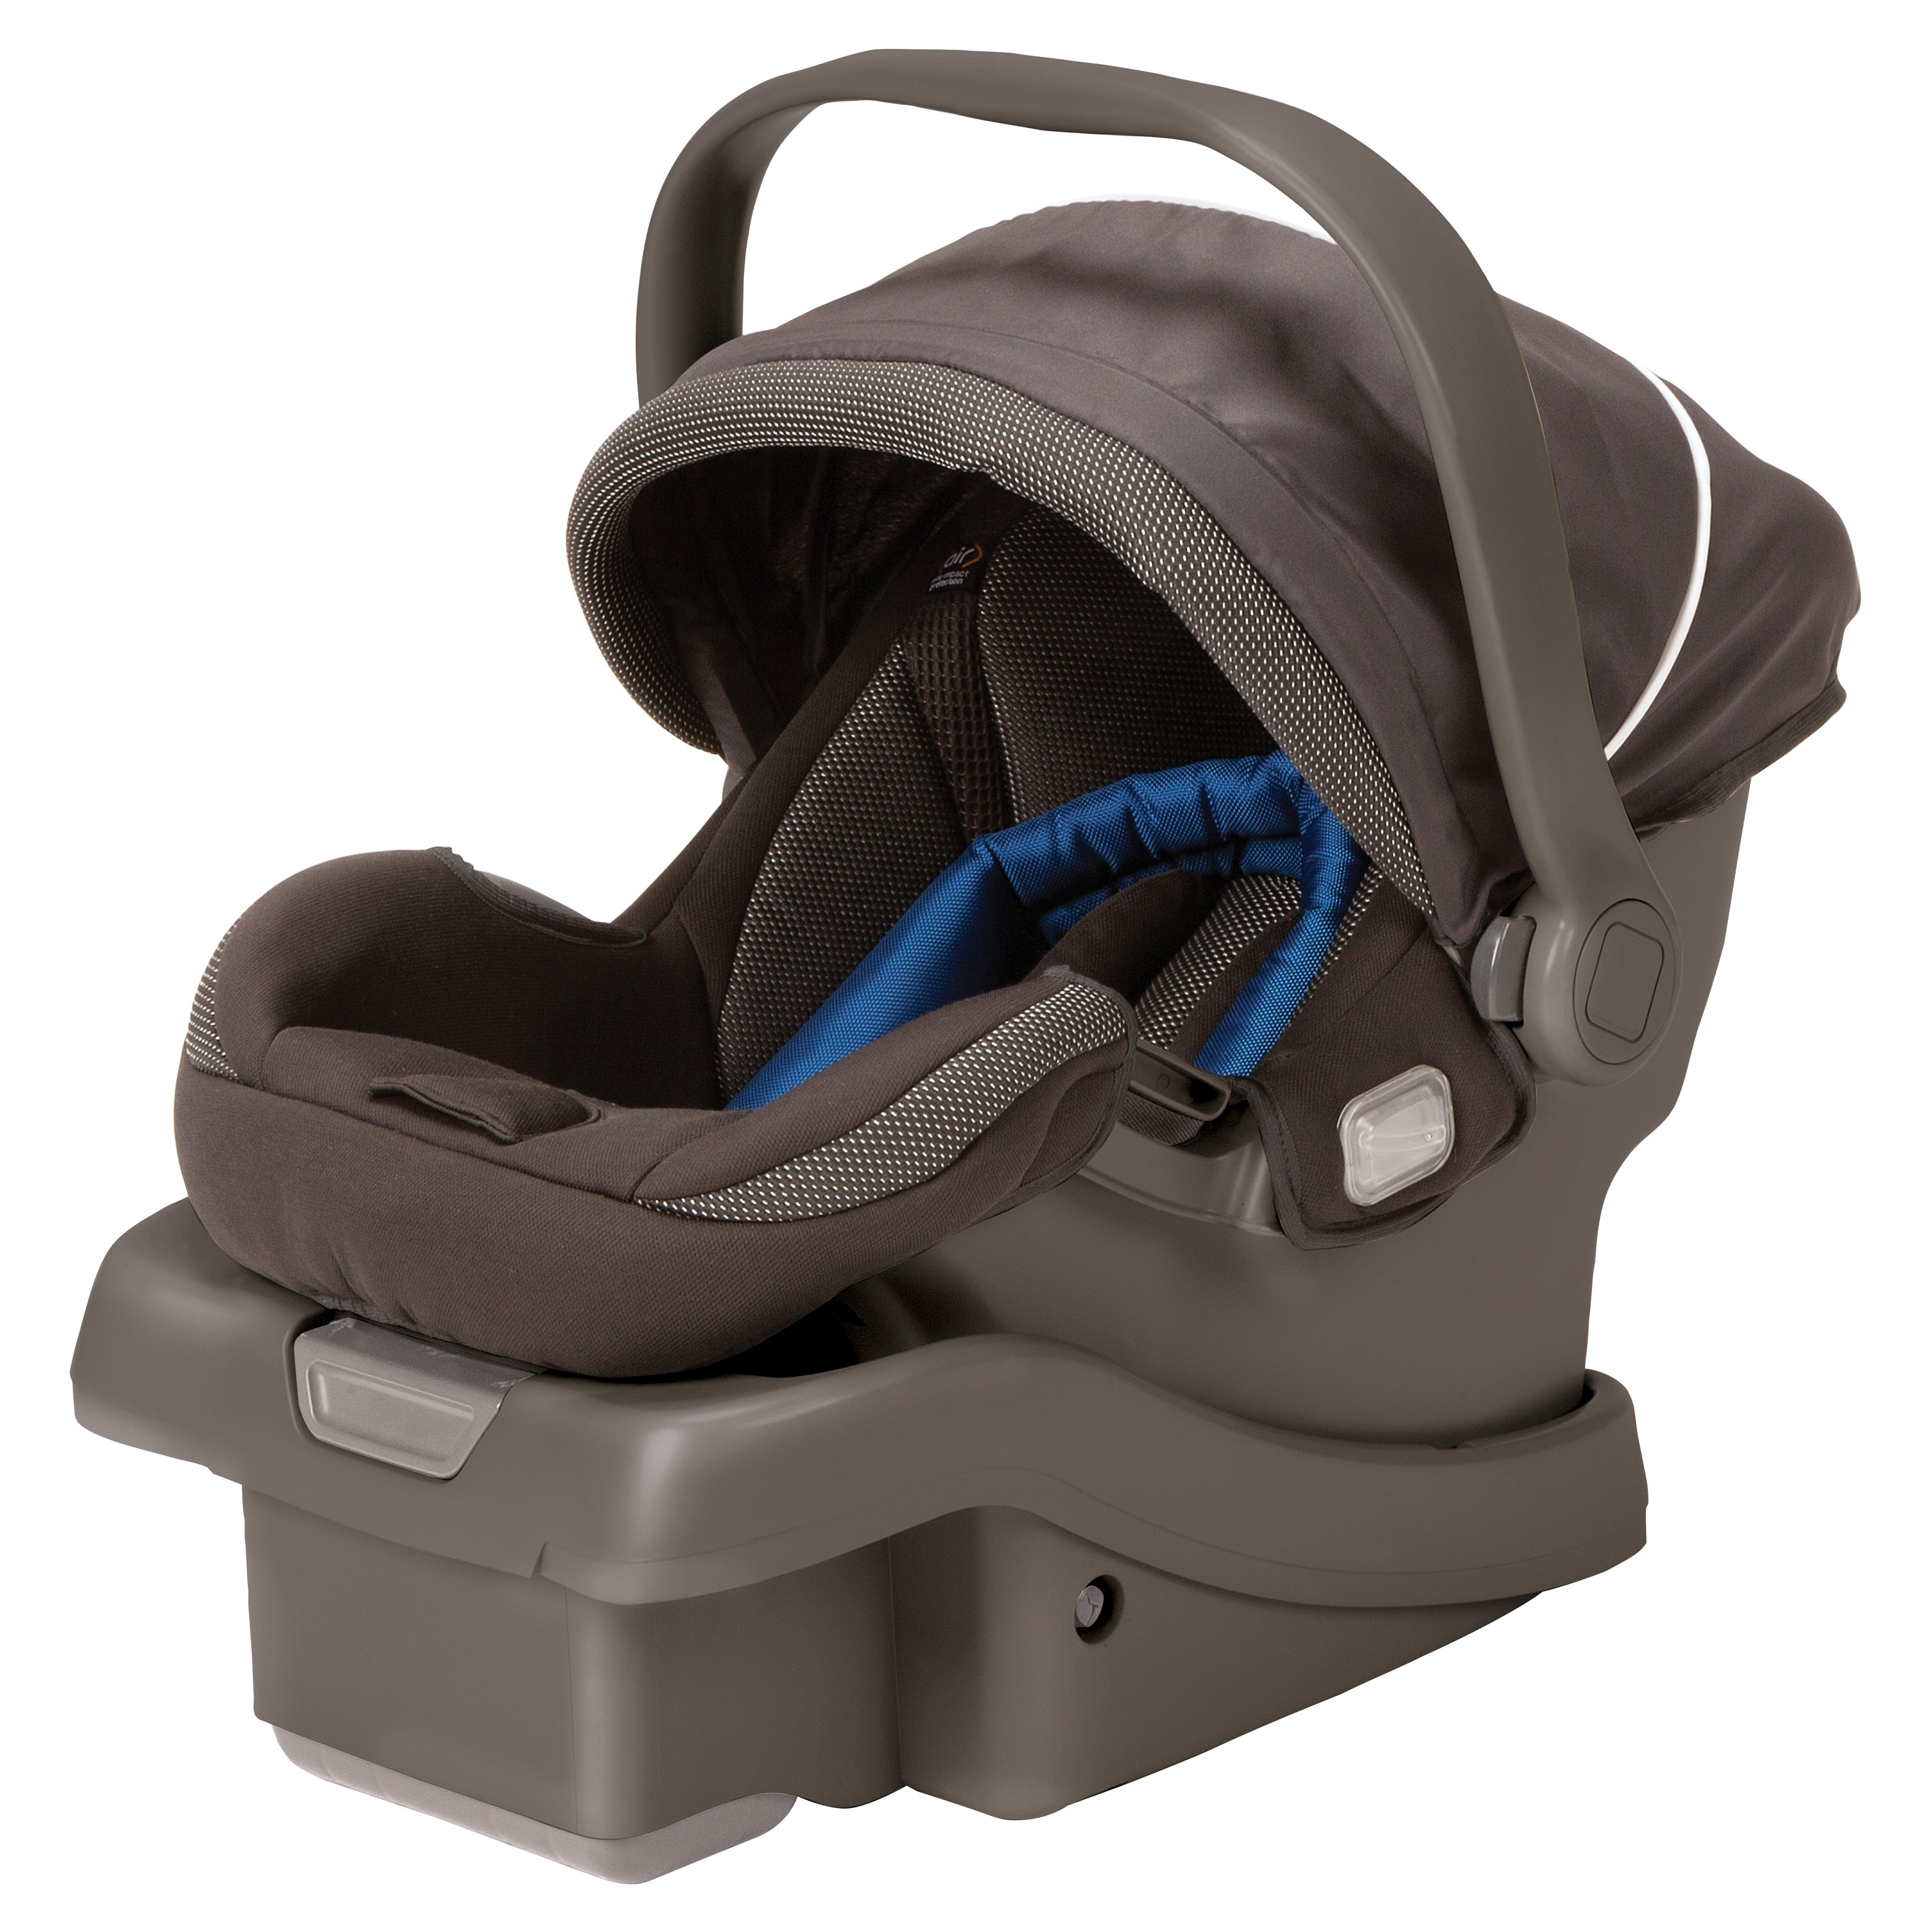 Dorel Juvenile Safety 1st onBoard 35 Air Car Seat - York